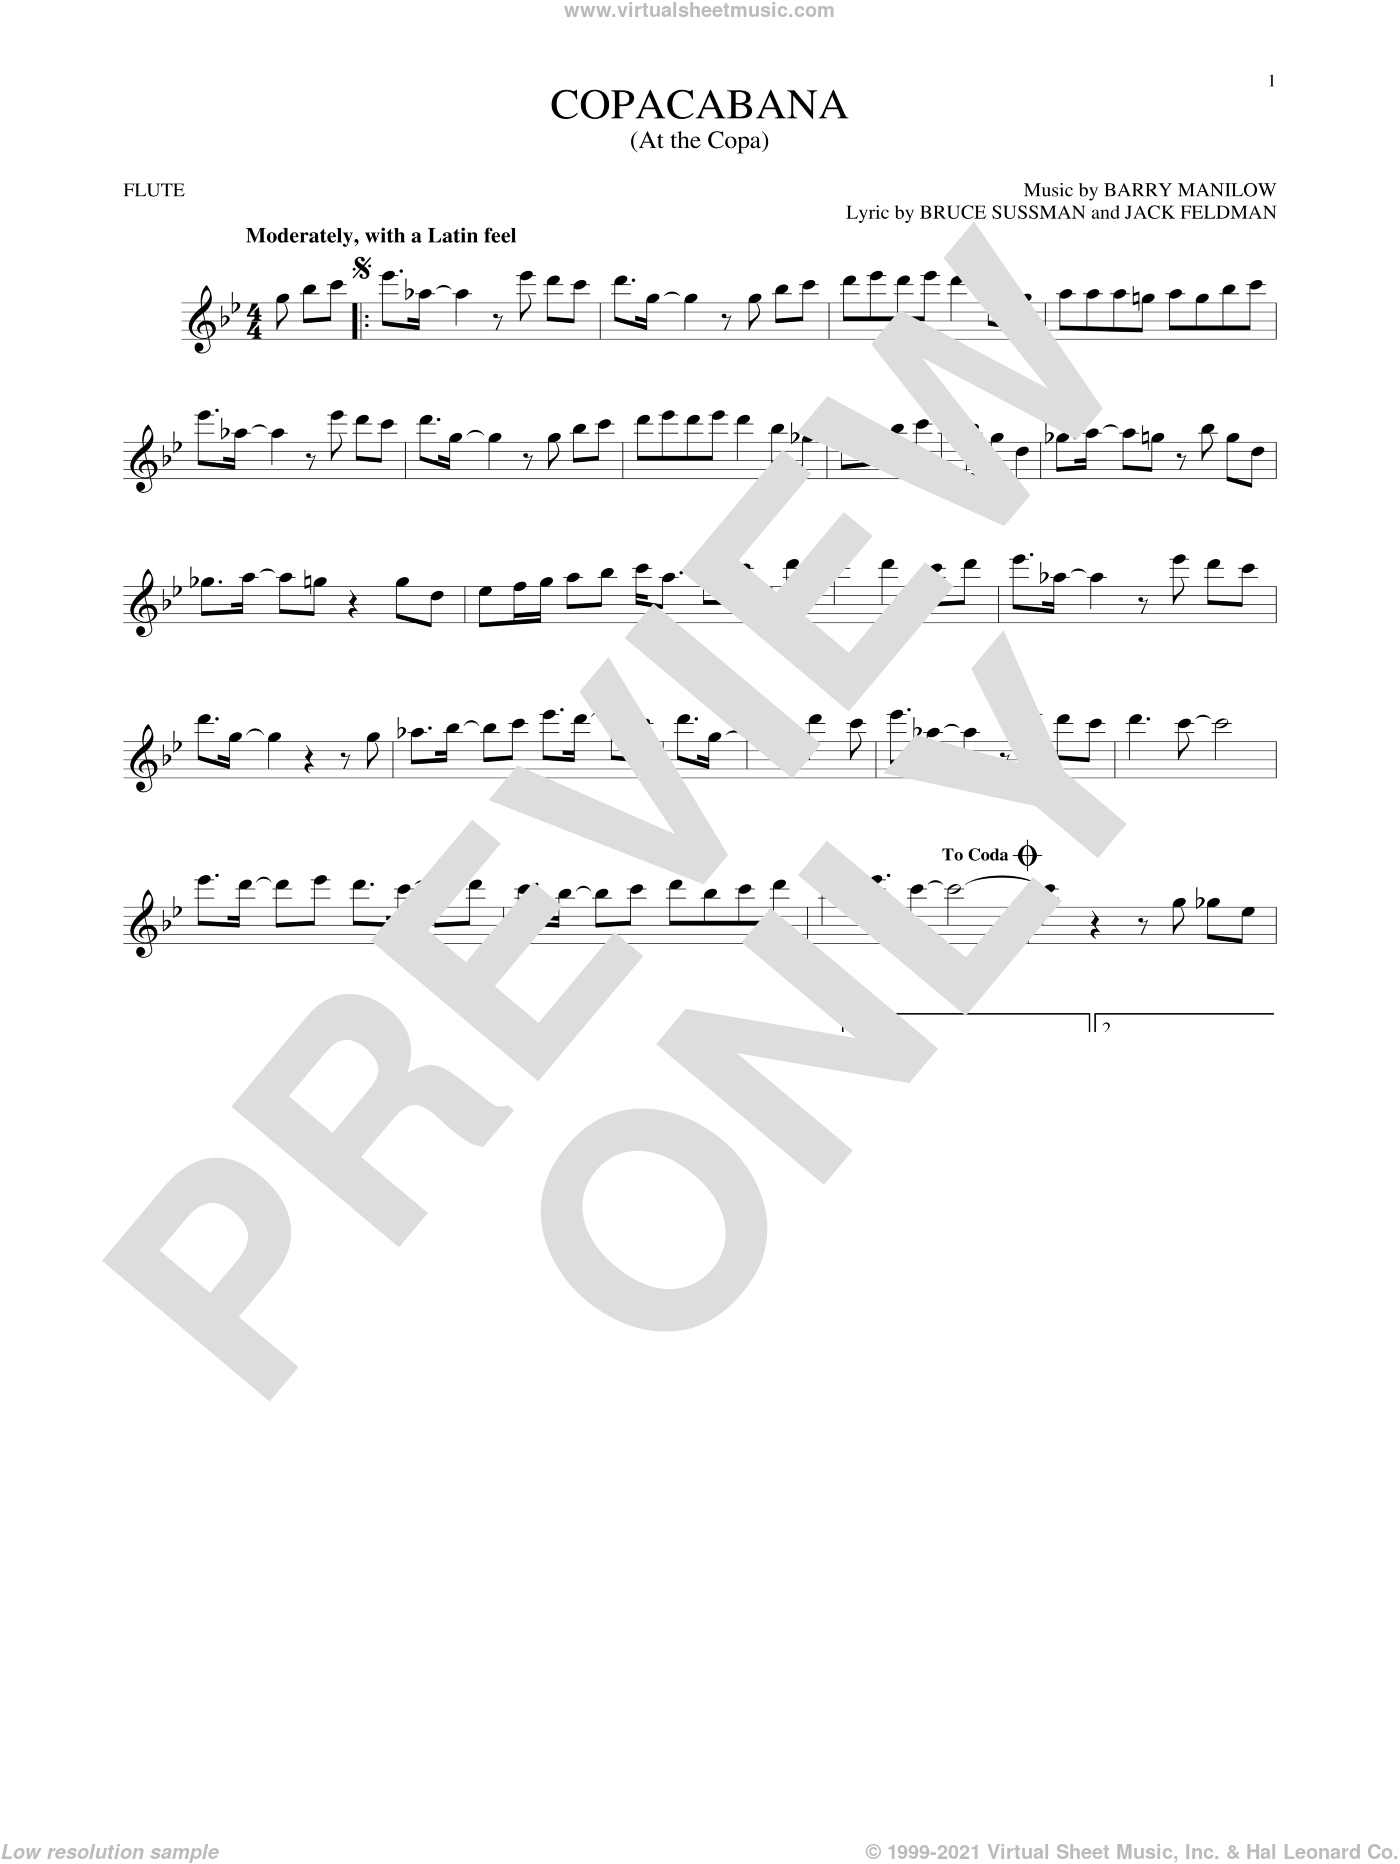 Copacabana (At The Copa) sheet music for flute solo by Barry Manilow and Jack Feldman. Score Image Preview.